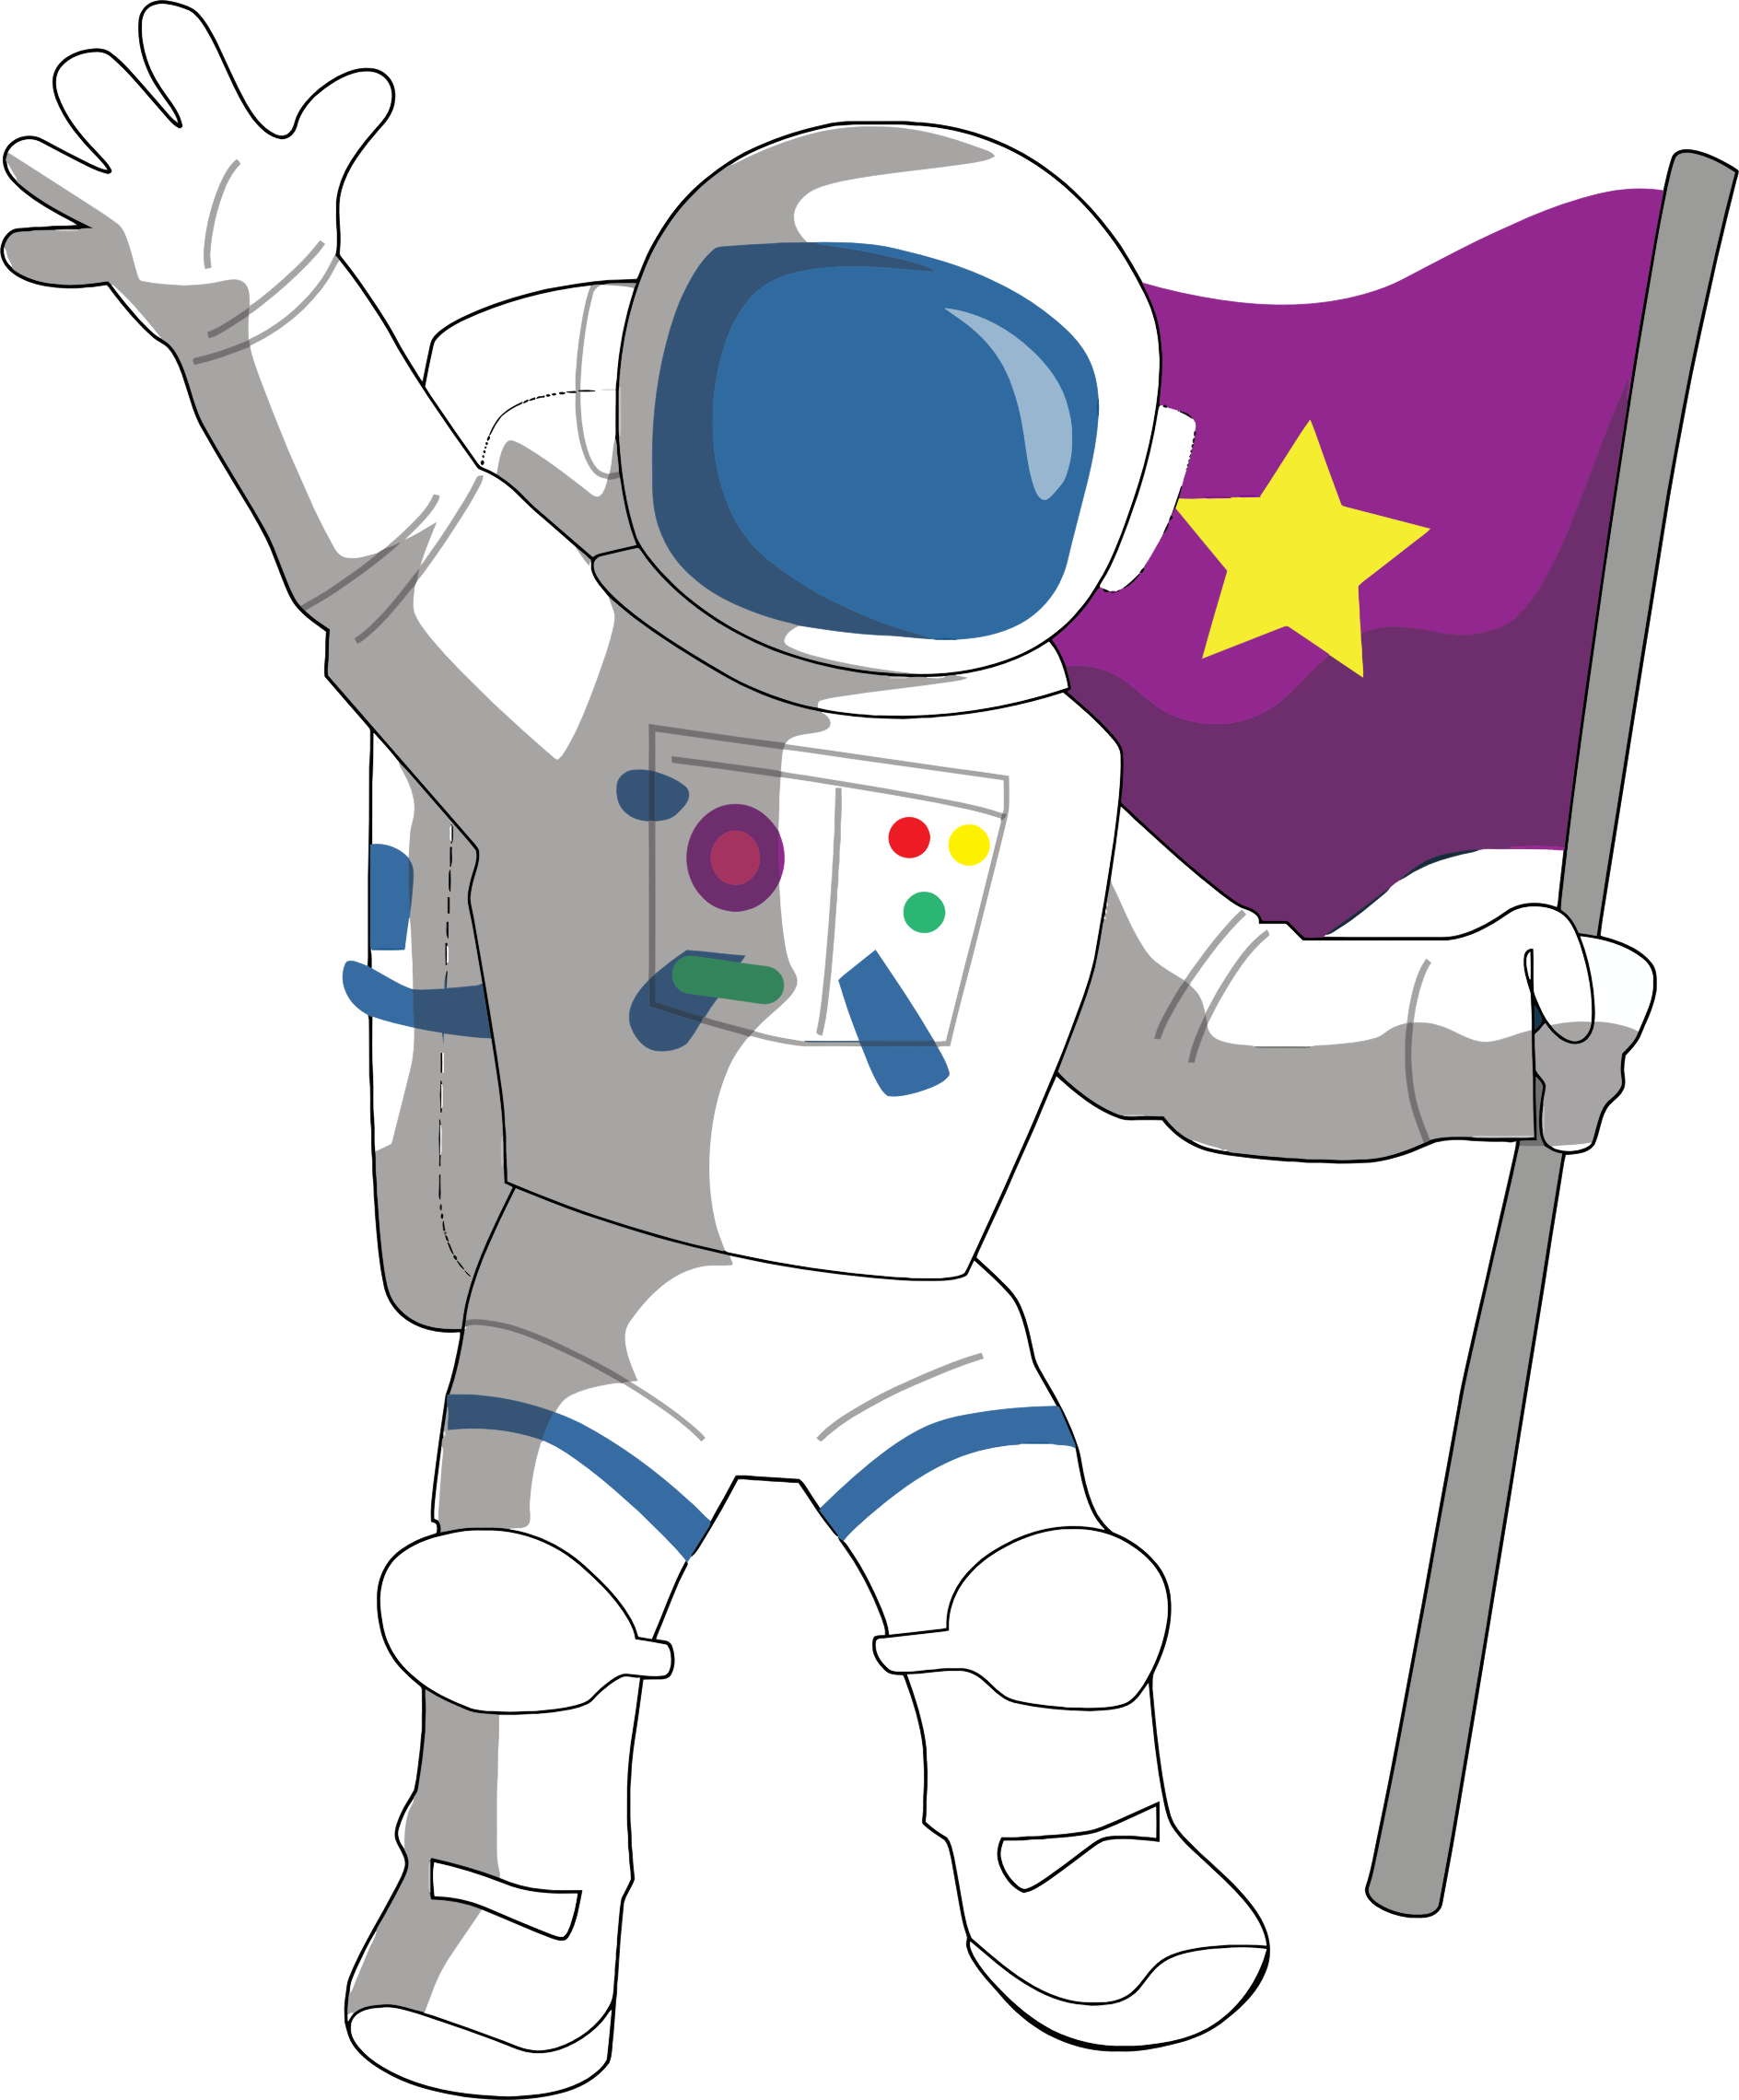 Download Astronaut PNG Image For Free